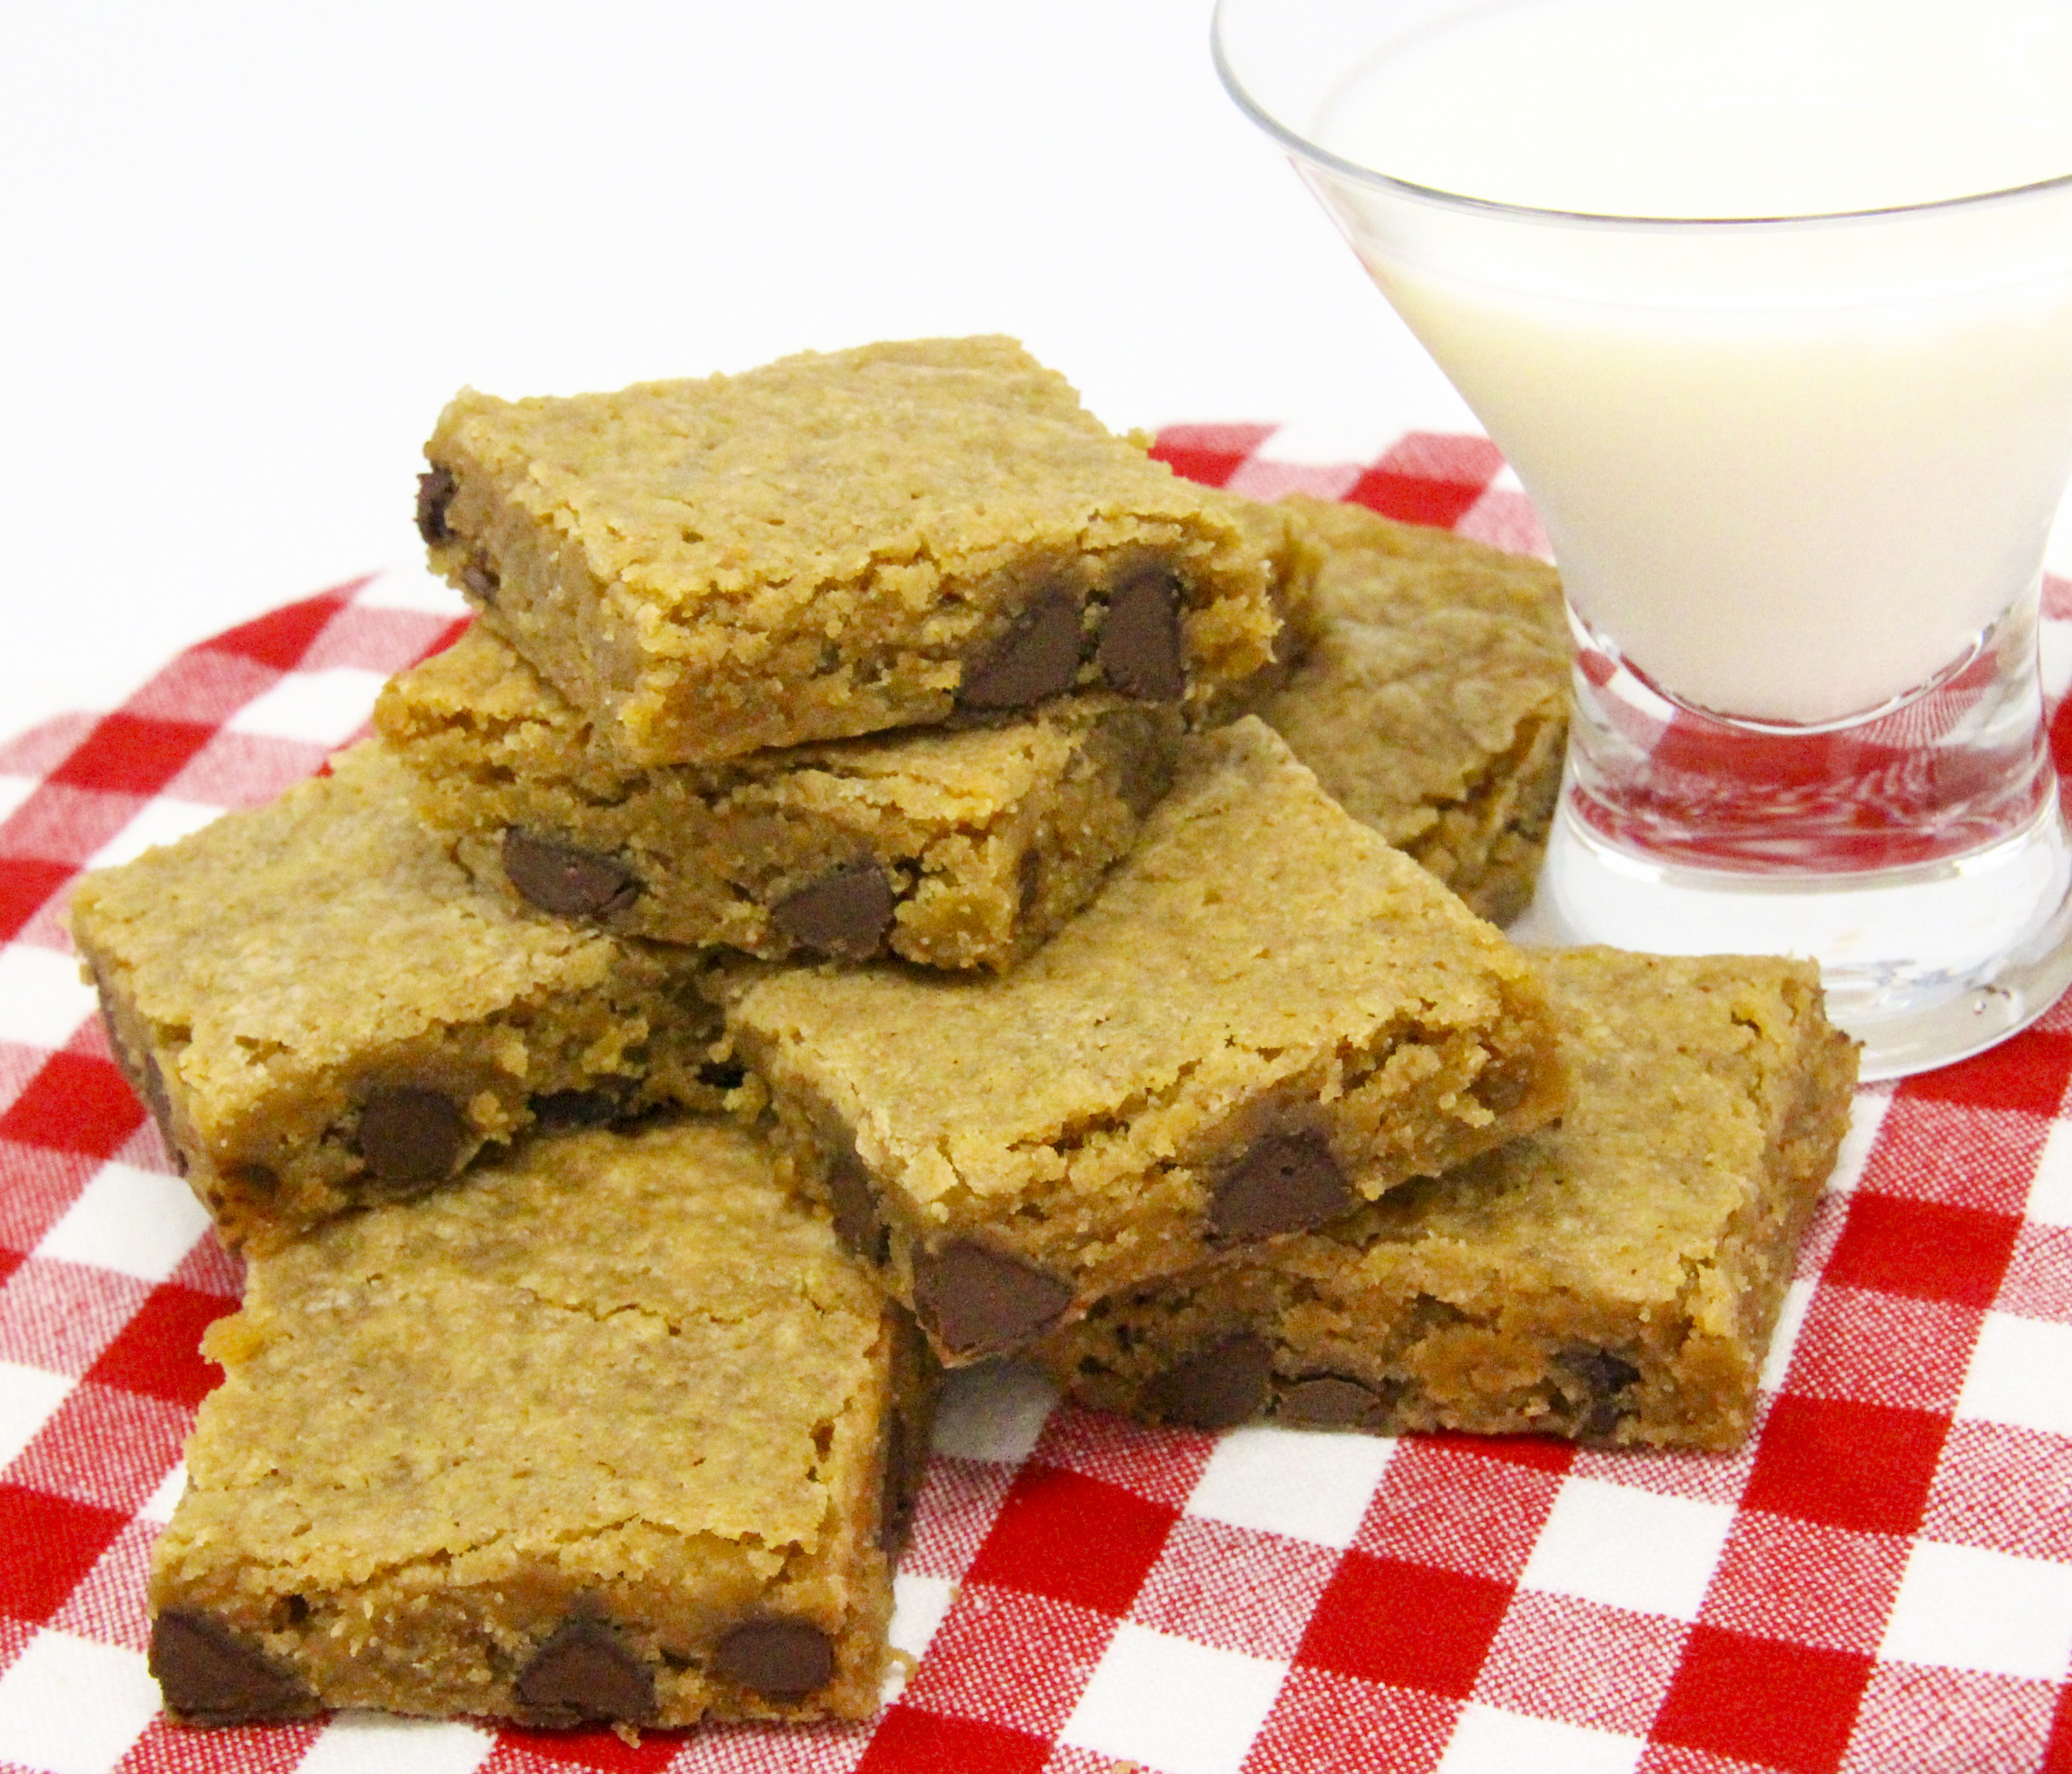 Bourbon Chocolate Chip Blondies mix together quickly using pantry and dairy staples. It didn't take long for these to bake so we could enjoy the delectable combination of bourbon with the creamy sweetness of chocolate. Recipe shared with permission granted by Krista Davis, author of THE DIVA SERVES FORBIDDEN FRUIT.